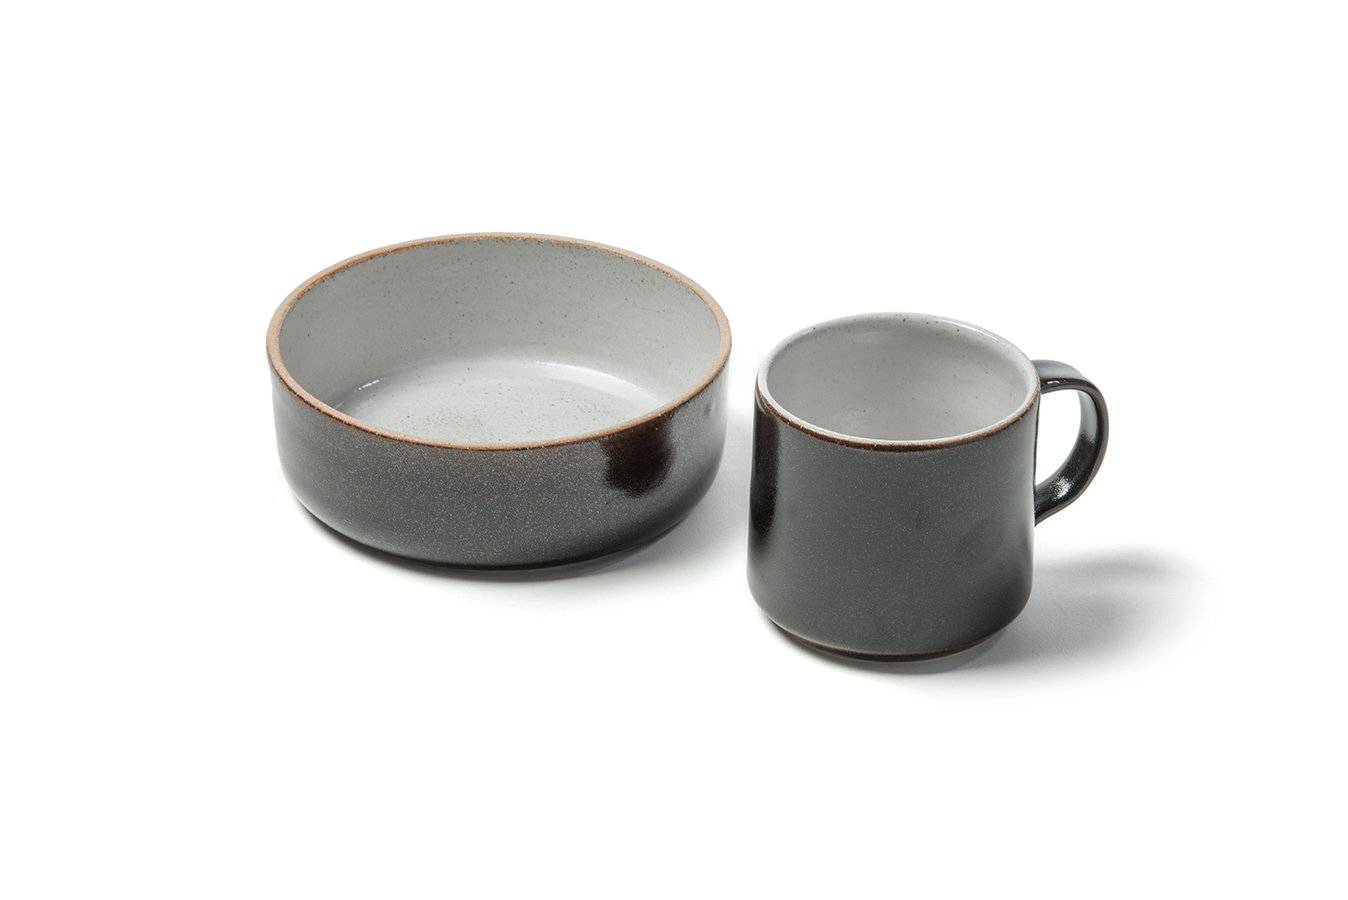 luna bowl and cup in tenmoku.jpg